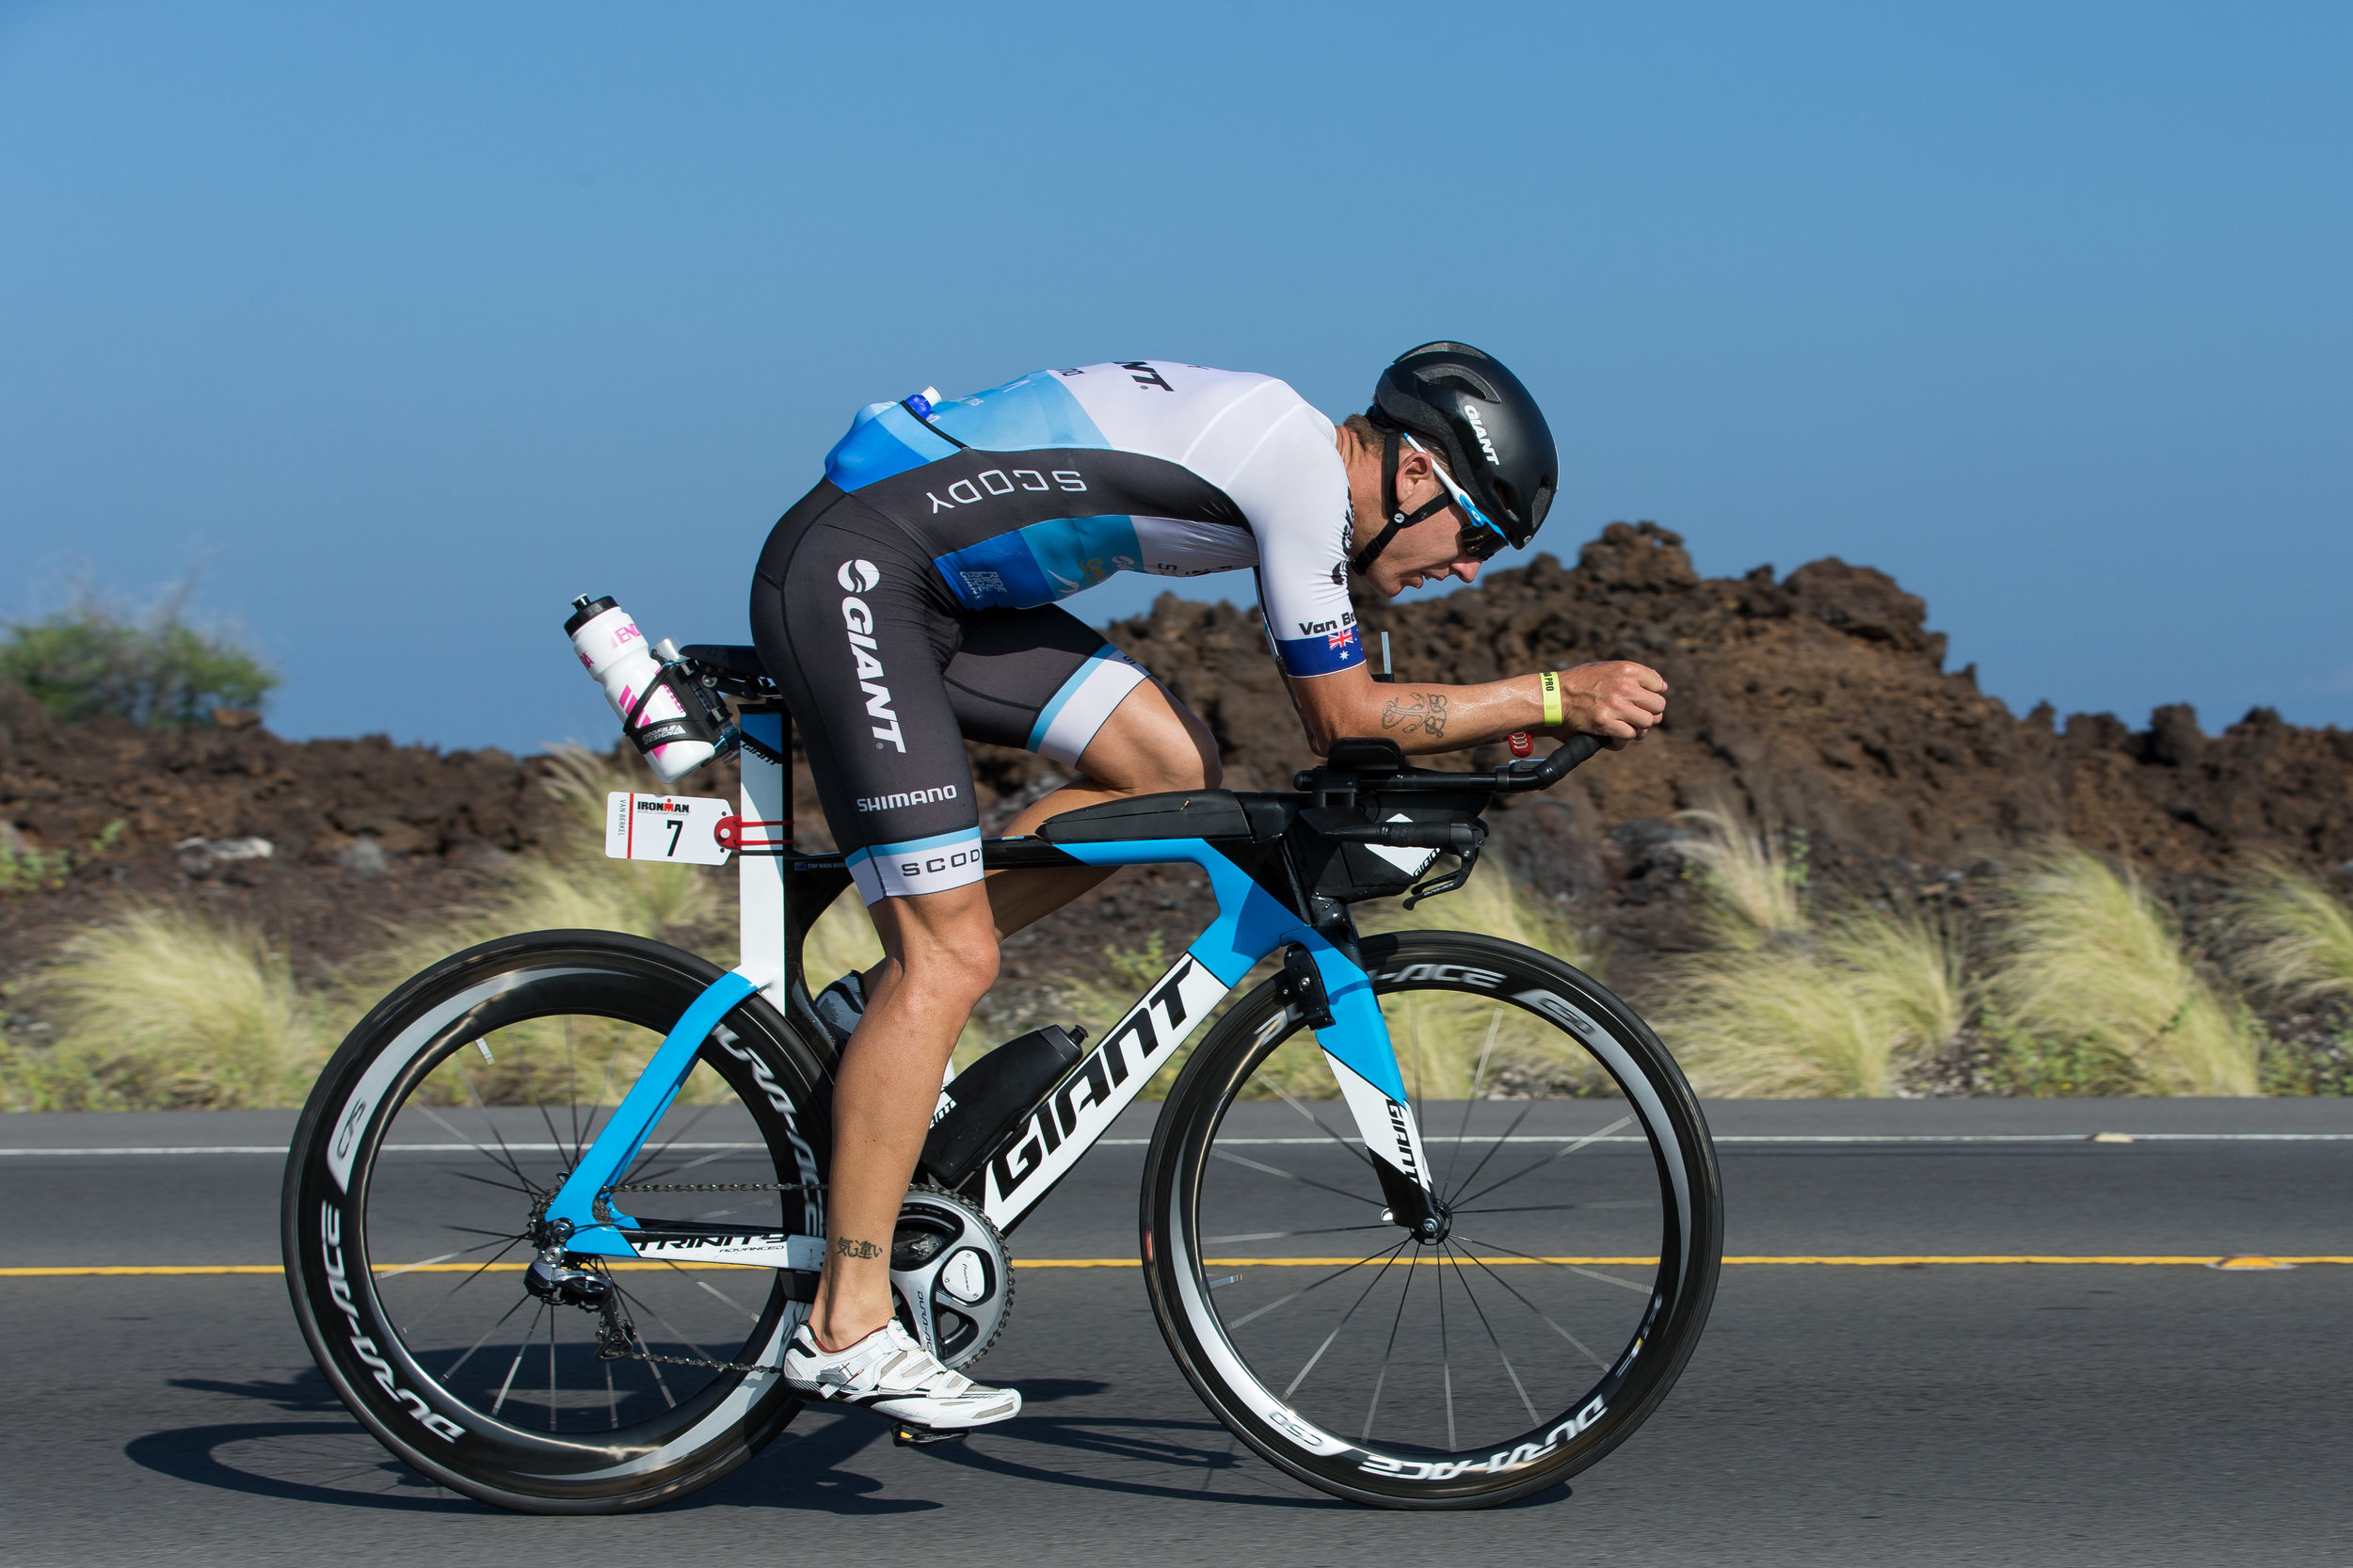 """The kit keeps my activation and mobility on point, which is key for my performance"" - — TIM VAN BERKEL, PRO-TRIATHLETE"